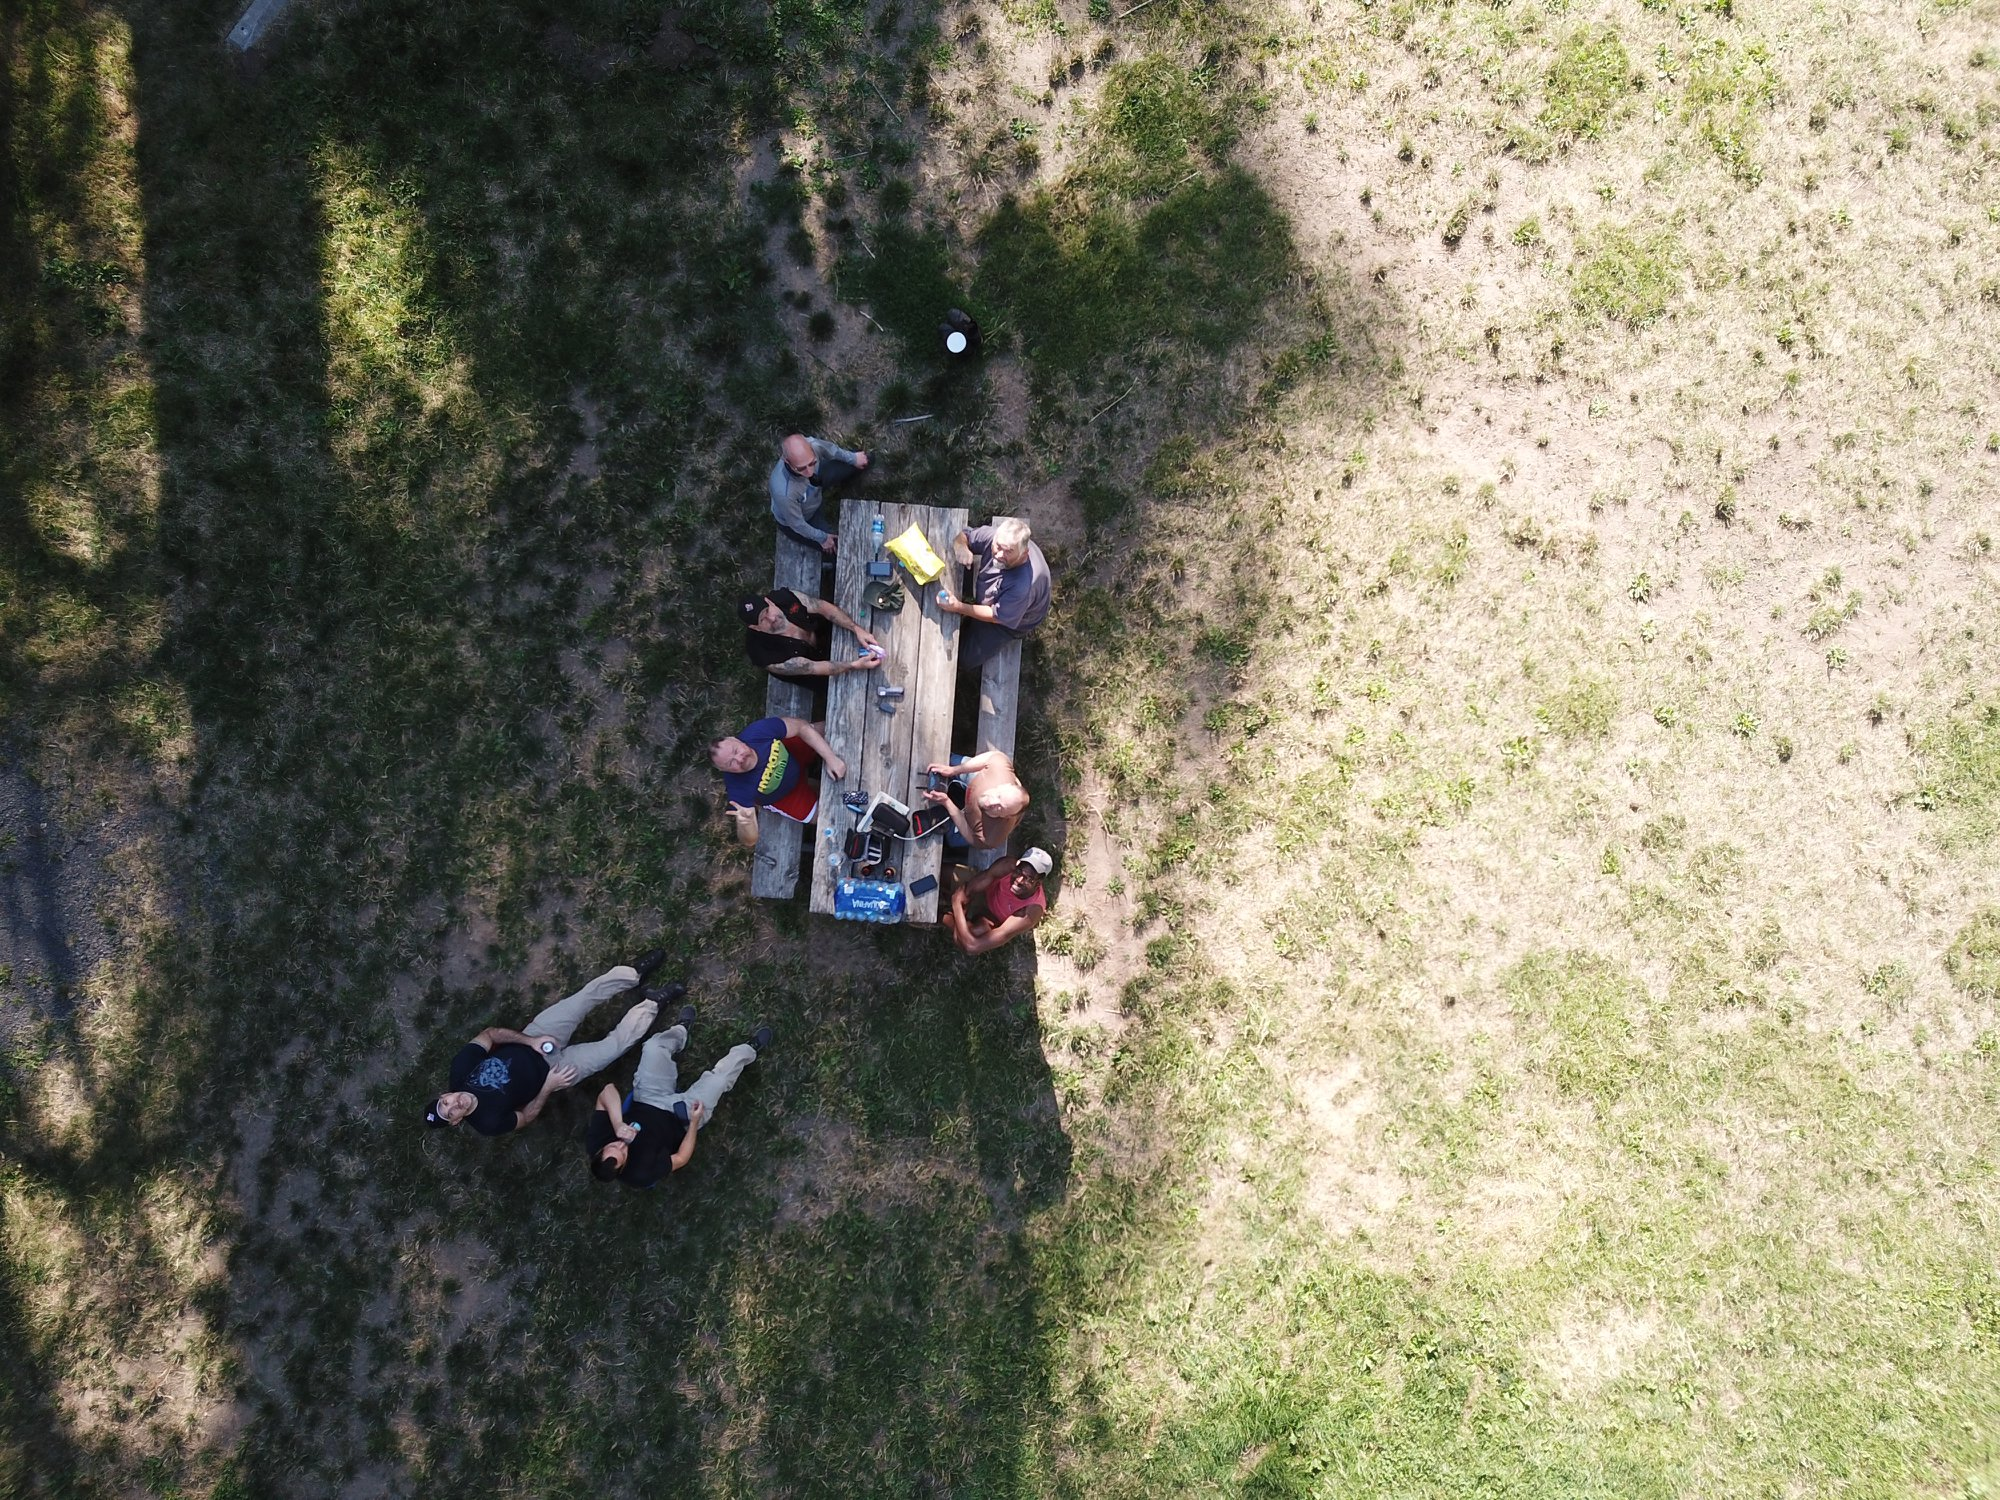 Bird's eye view of the guys camping at Lewis & Clark, Dayton WA